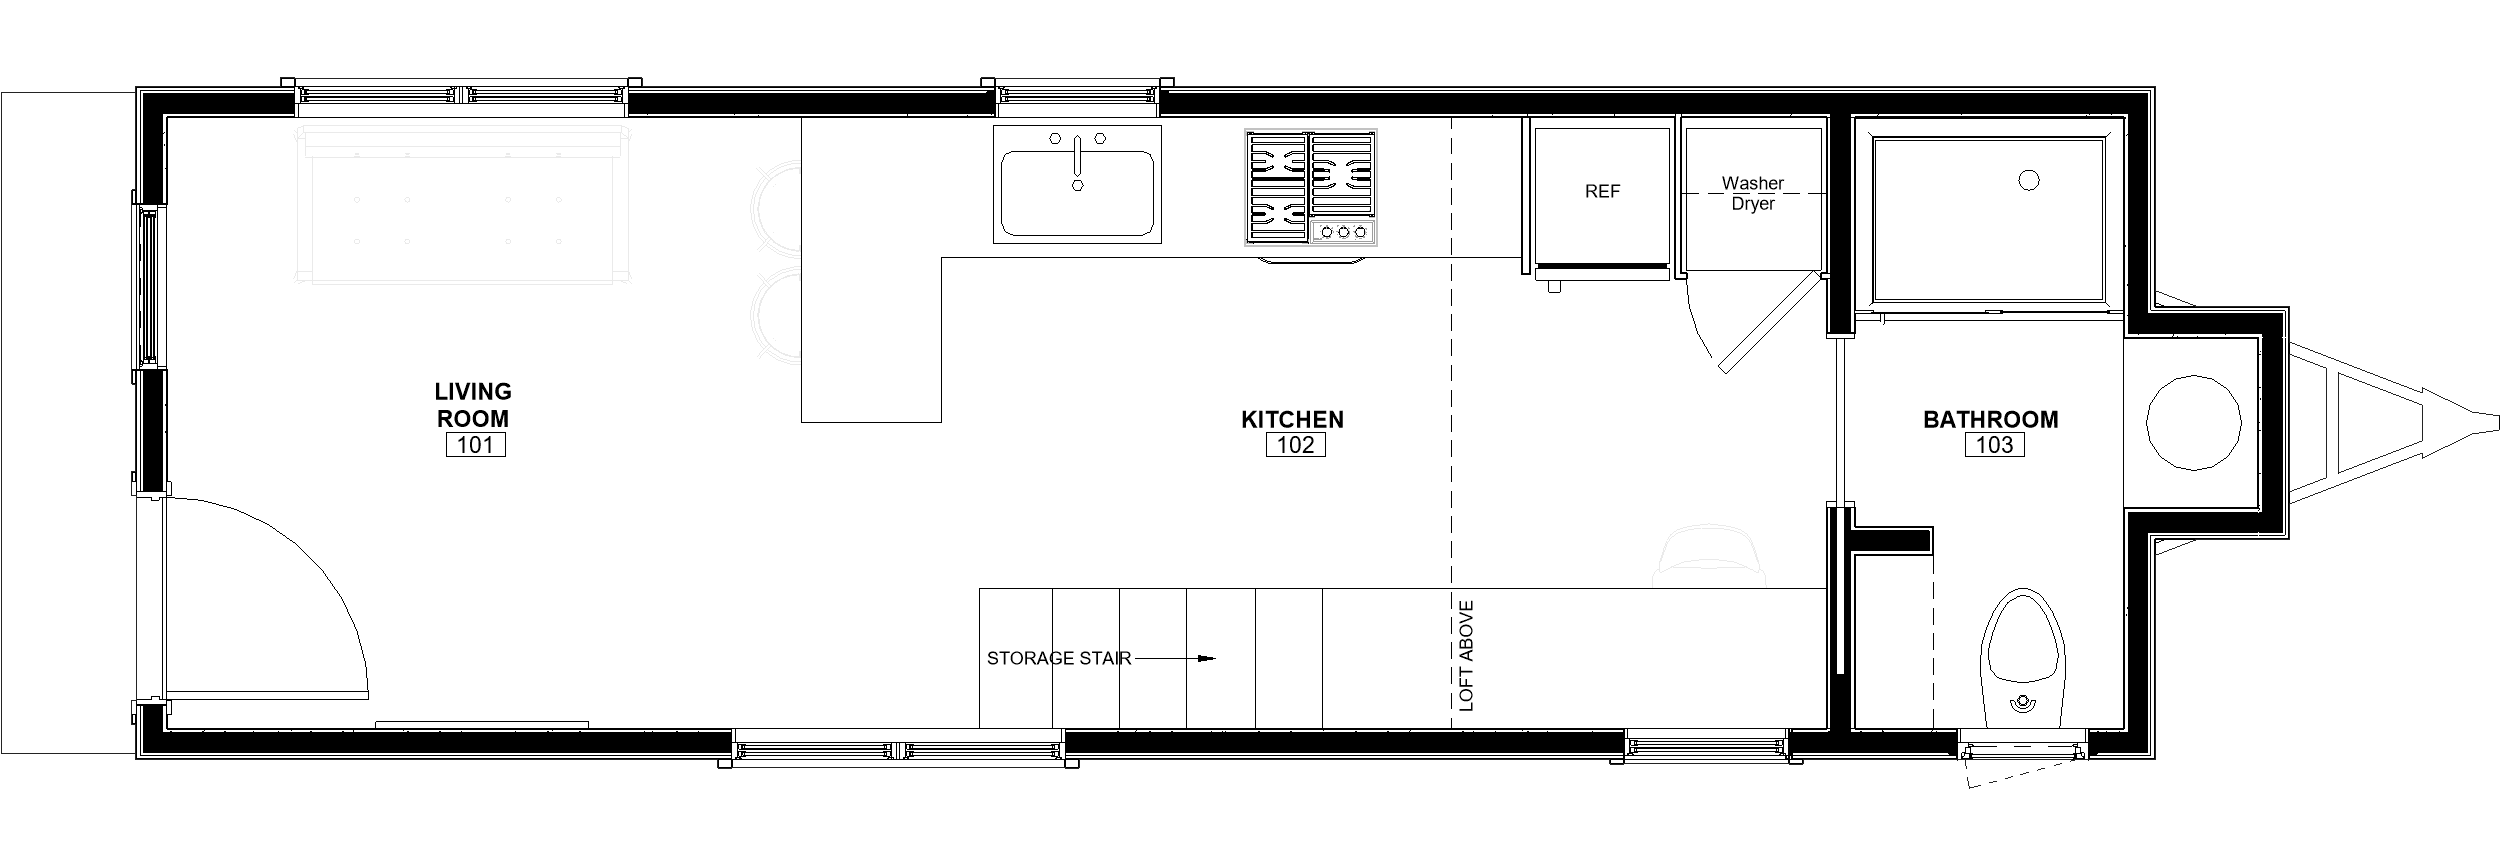 30ft Loft Toccoa floor plan